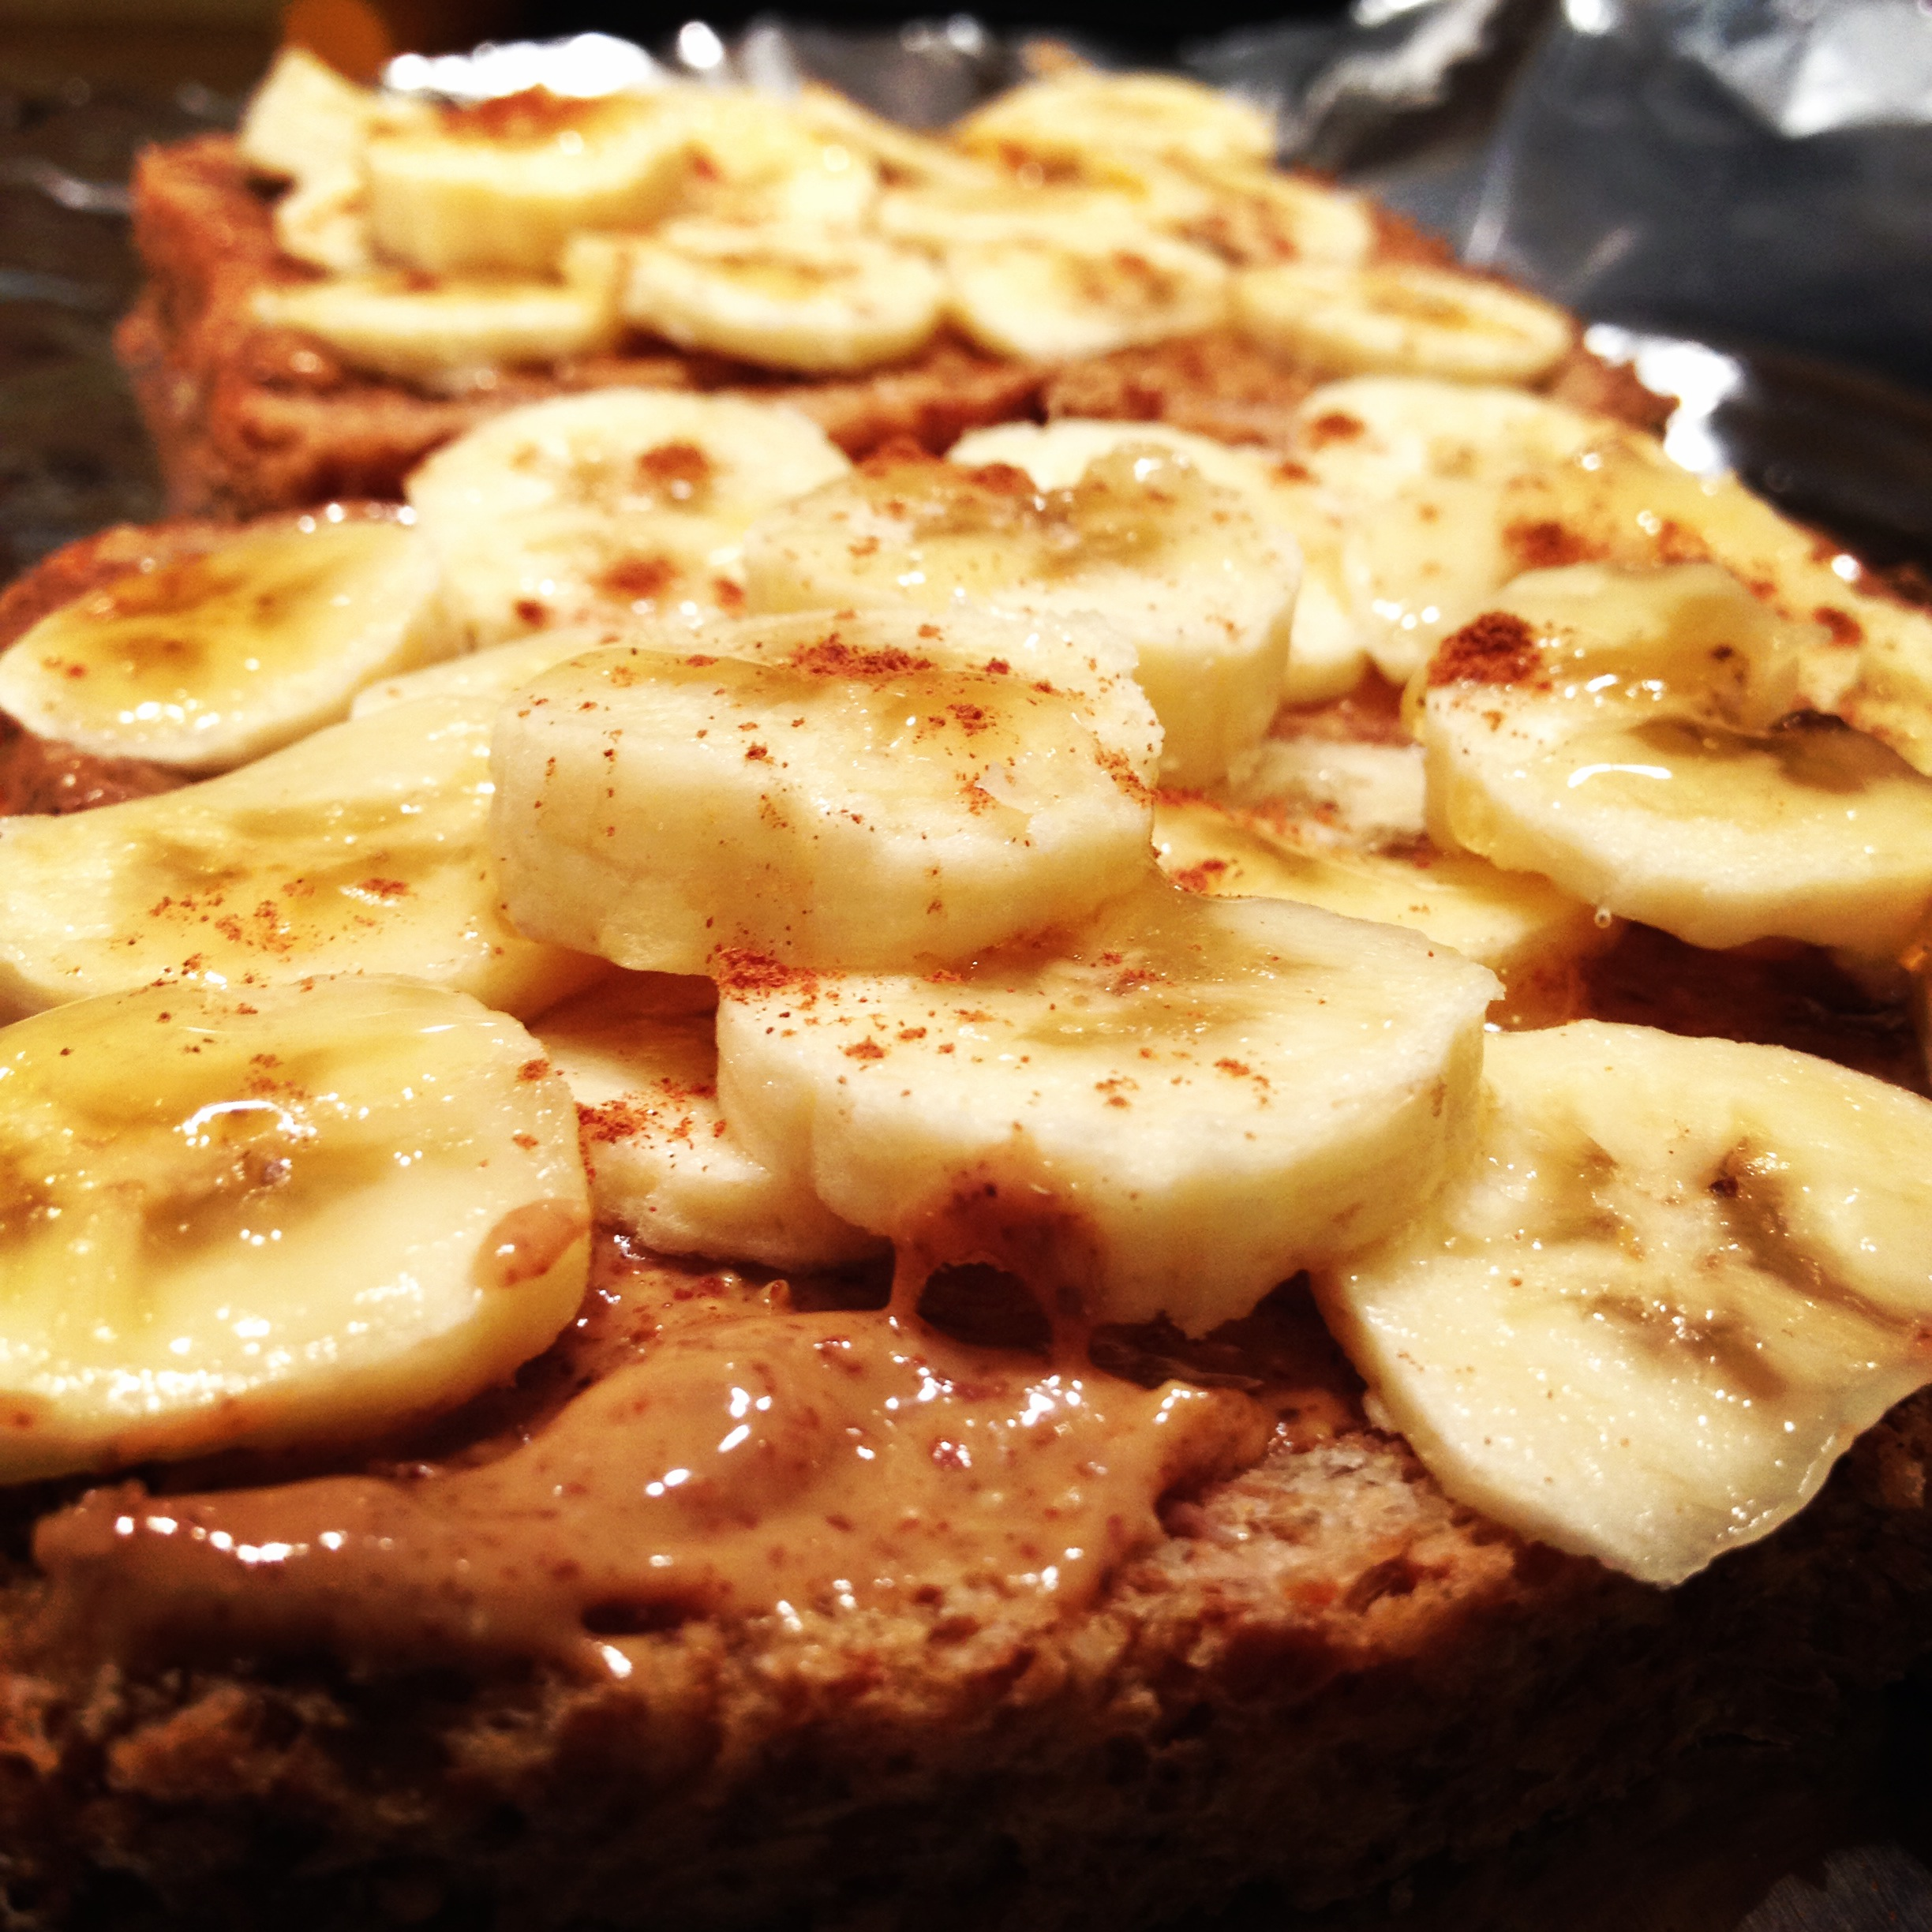 Toasted Ezekiel bread, almond butter, sliced banana, cinnamon sprinkle. (My go-to pre-race fuel!)